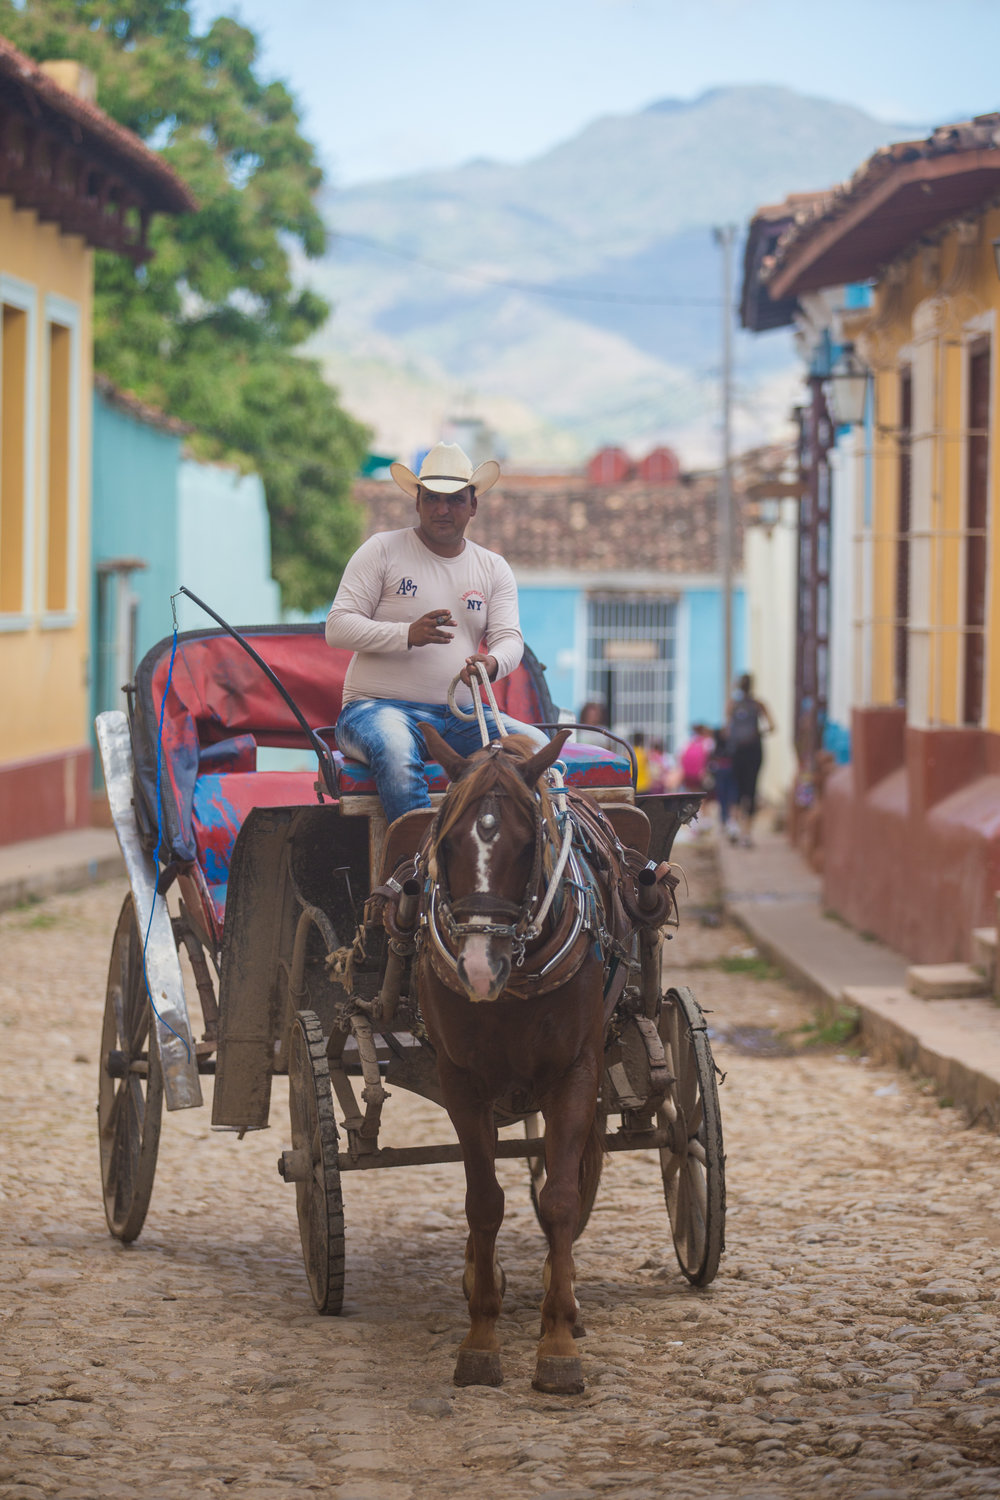 Horse and buggy service as a taxi along the cobblestone streets of Trinidad, Cuba.